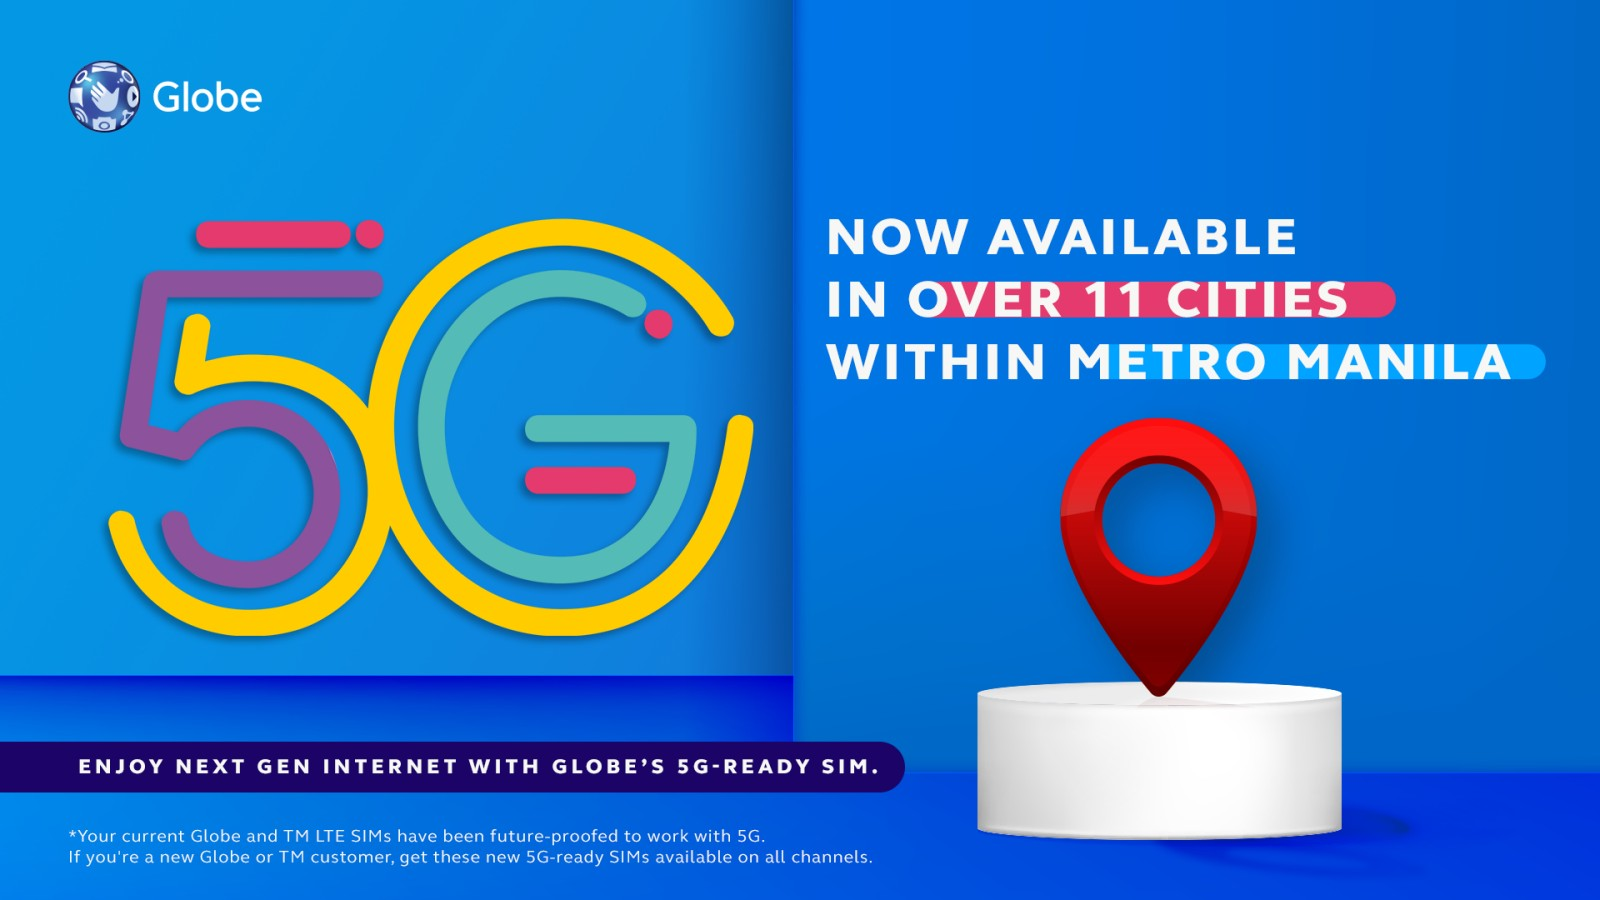 Globe announces the addition of new 5G locations in strategic areas in key cities in Metro Manila and nearby sites